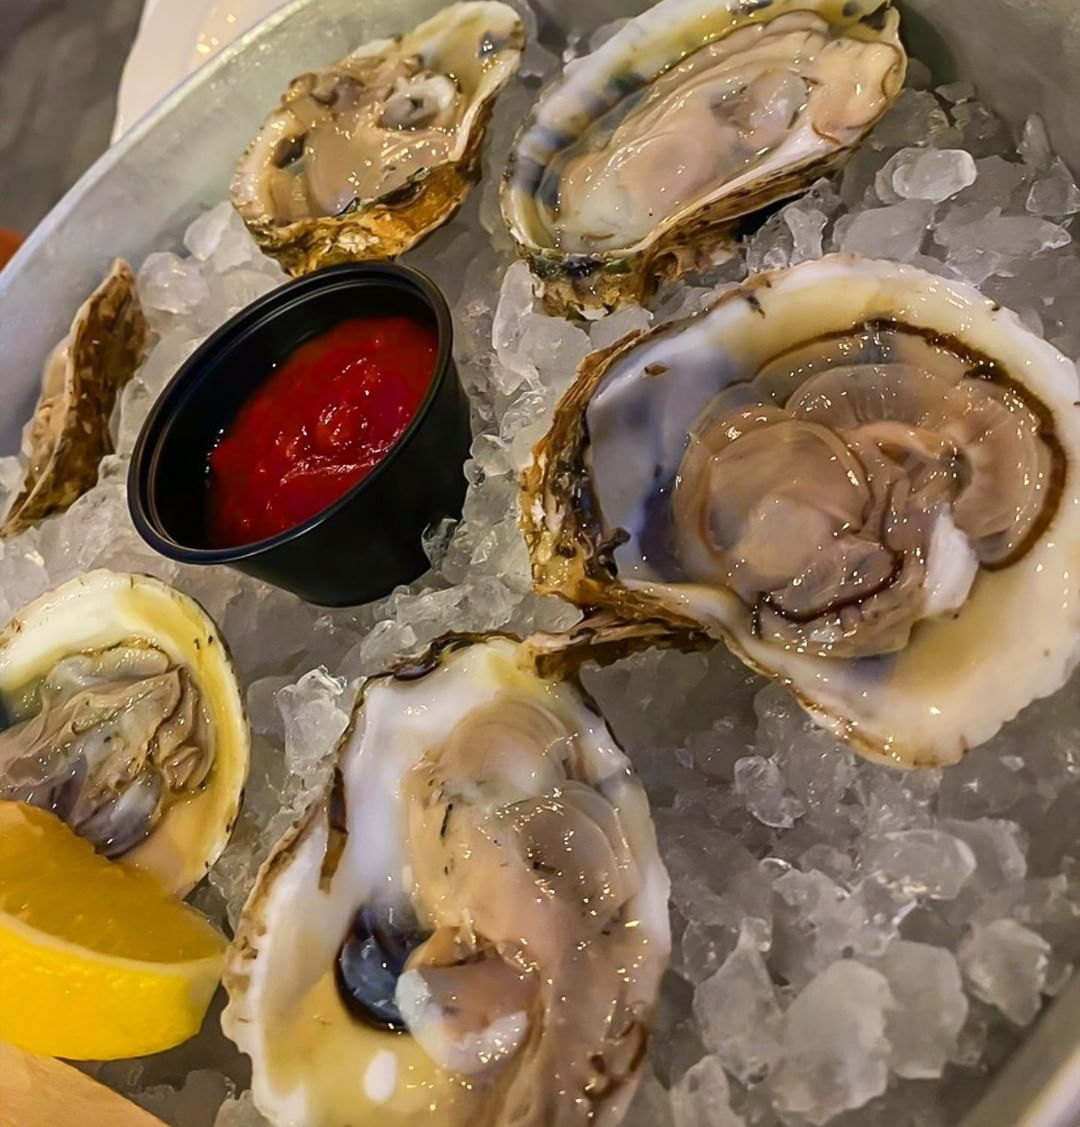 LBI Oysters or clams, which do you think are best? Get a head to head taste test on …